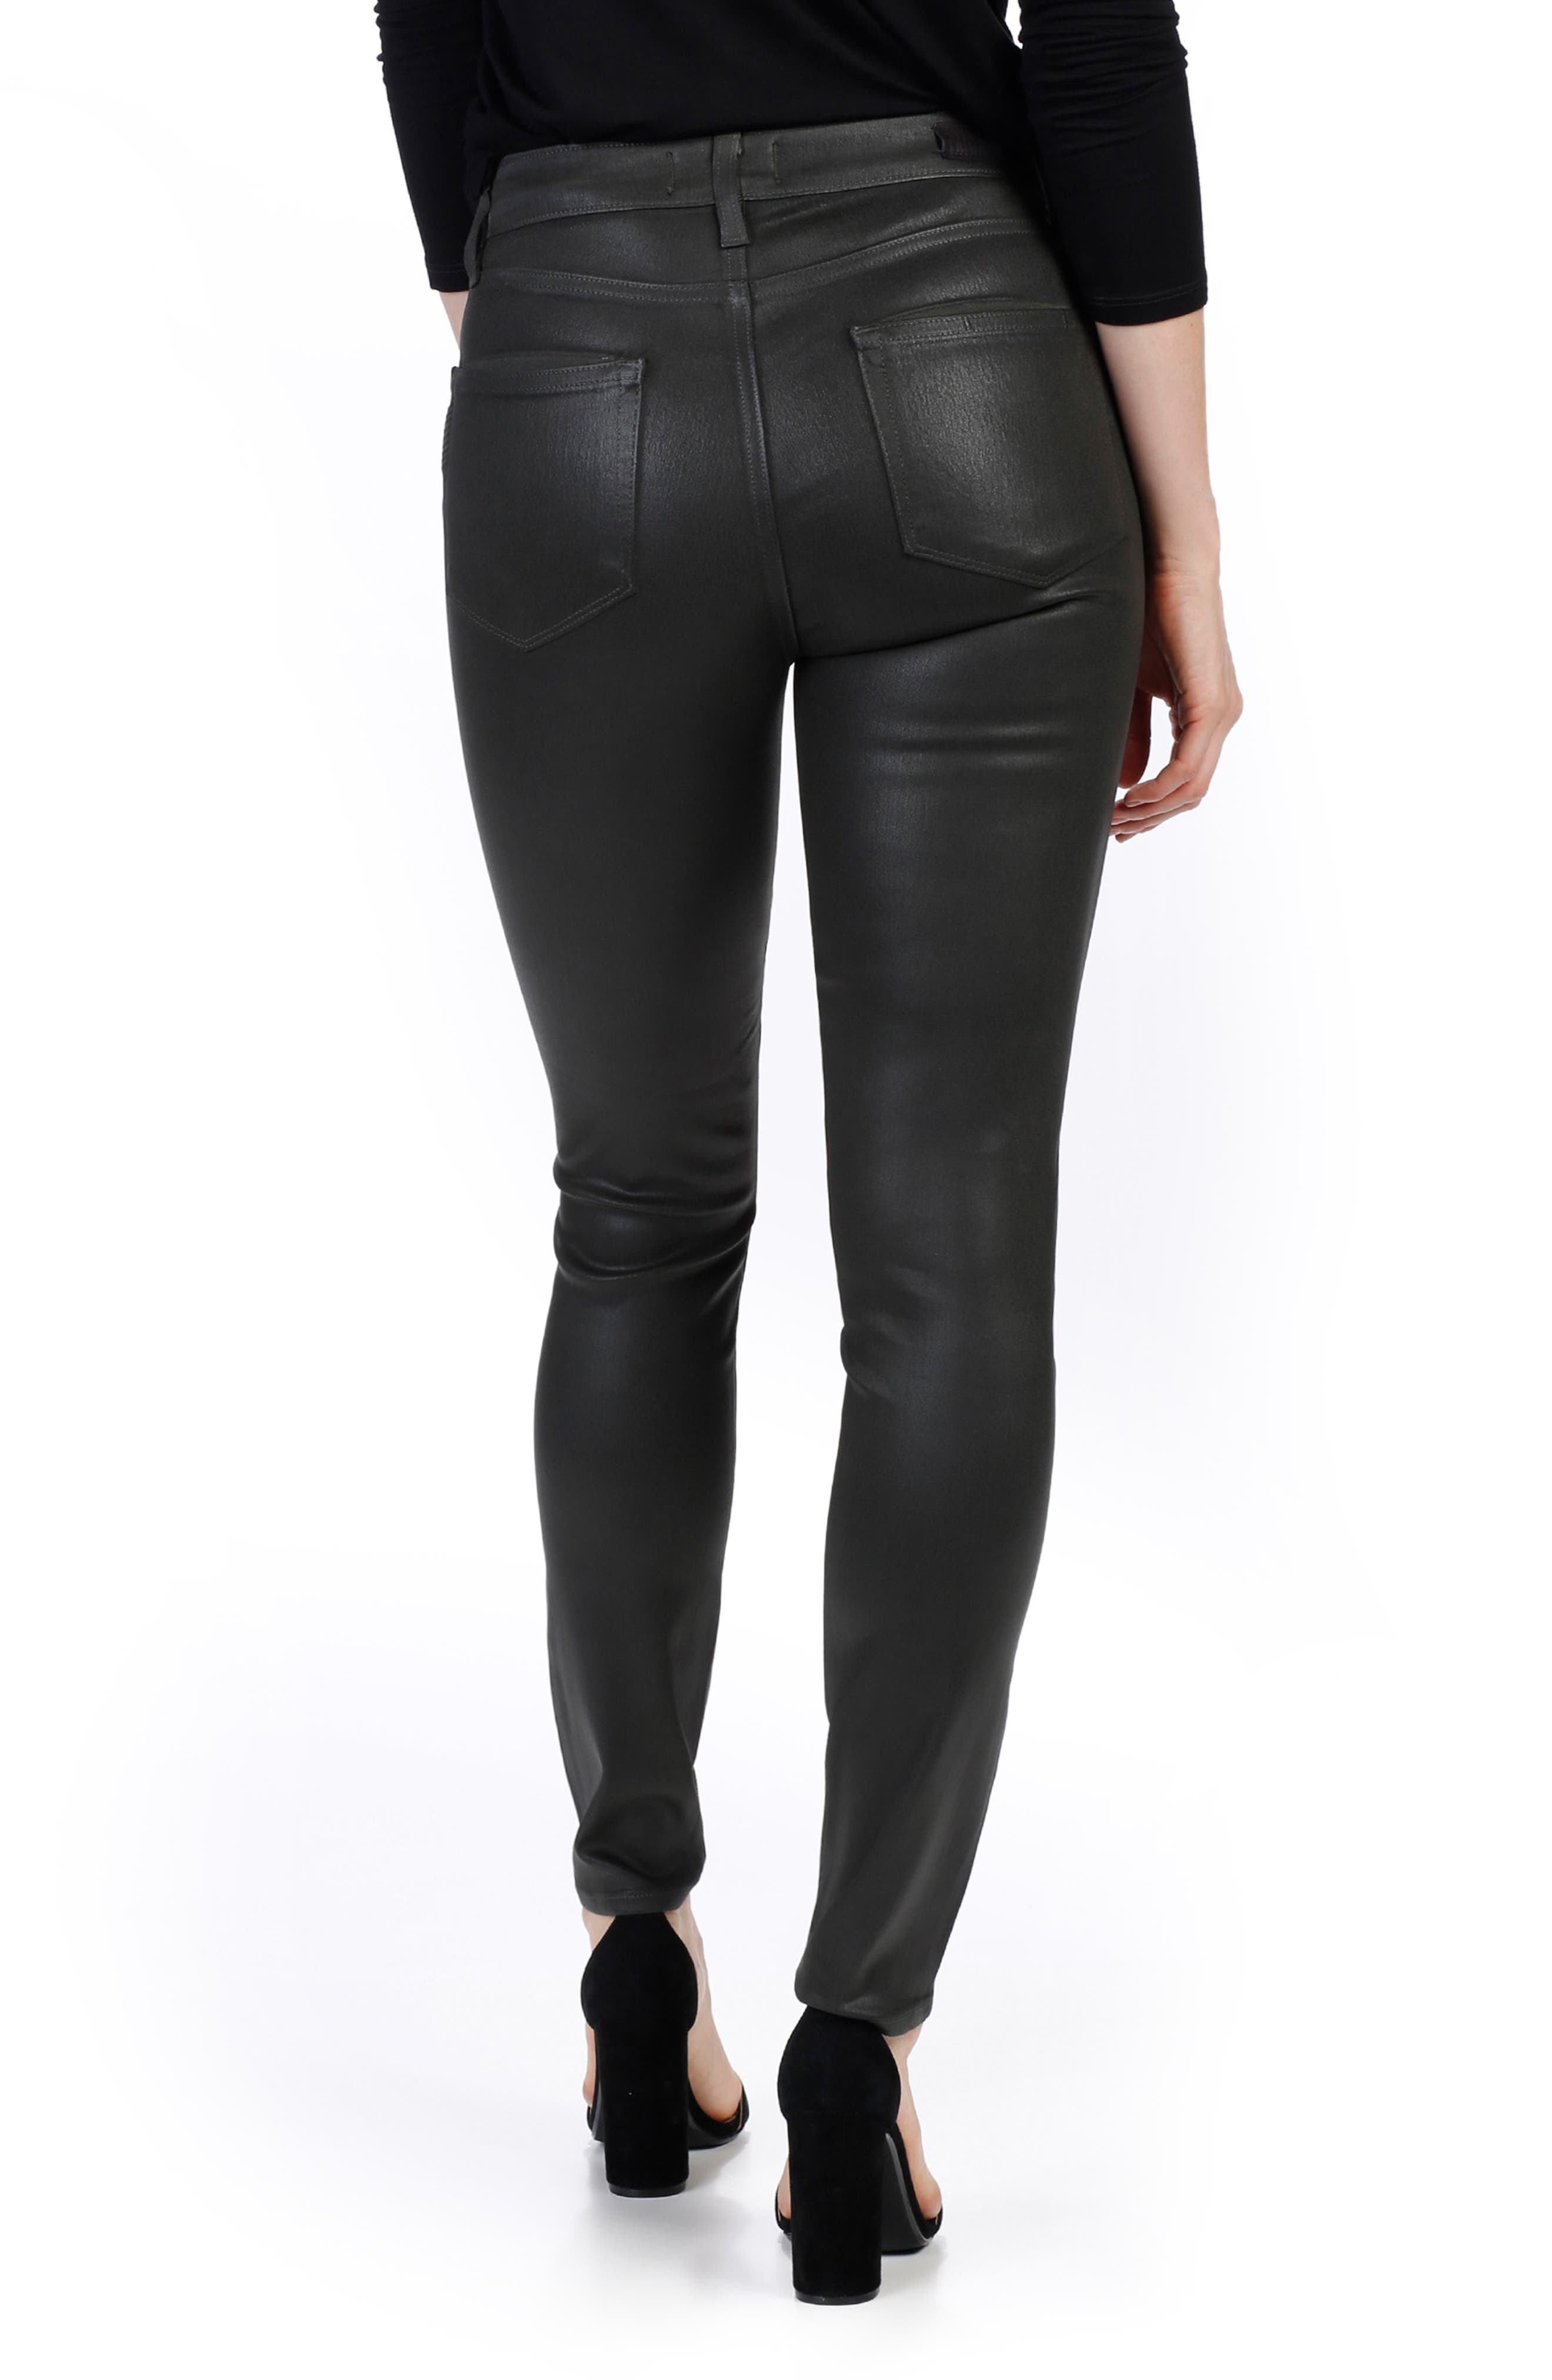 Transcend - Hoxton Coated High Waist Ankle Skinny Jeans,                             Alternate thumbnail 2, color,                             Deep Juniper Luxe Coating